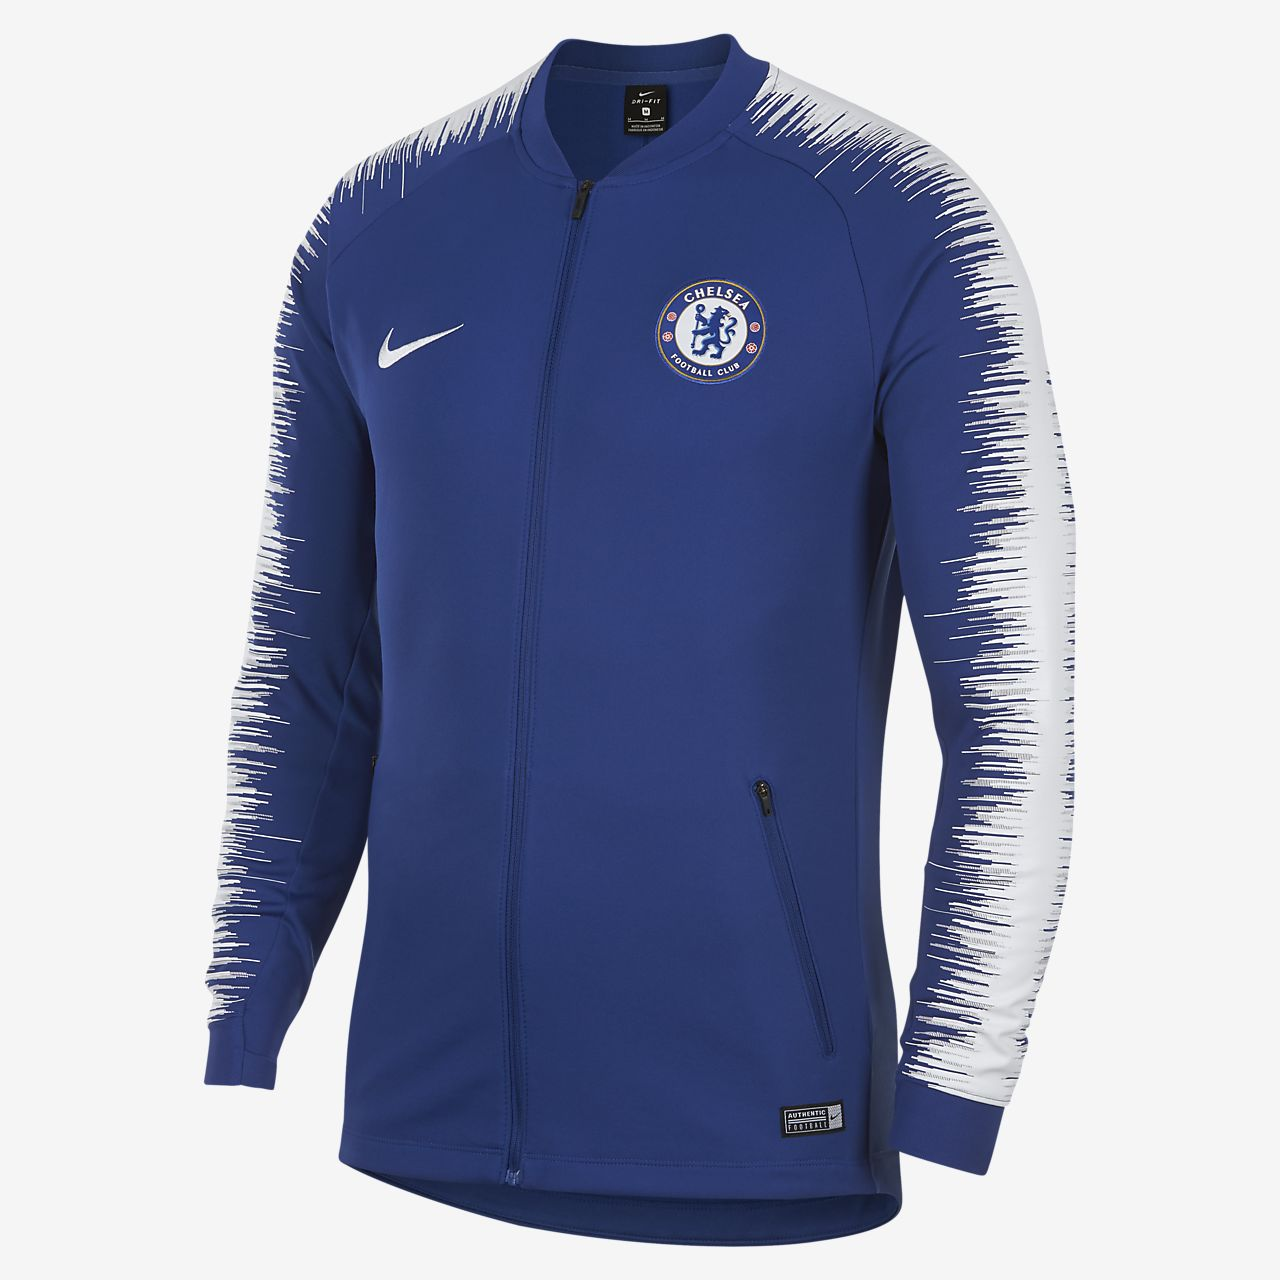 16819a105 Chelsea FC Anthem Men s Football Jacket. Nike.com NL